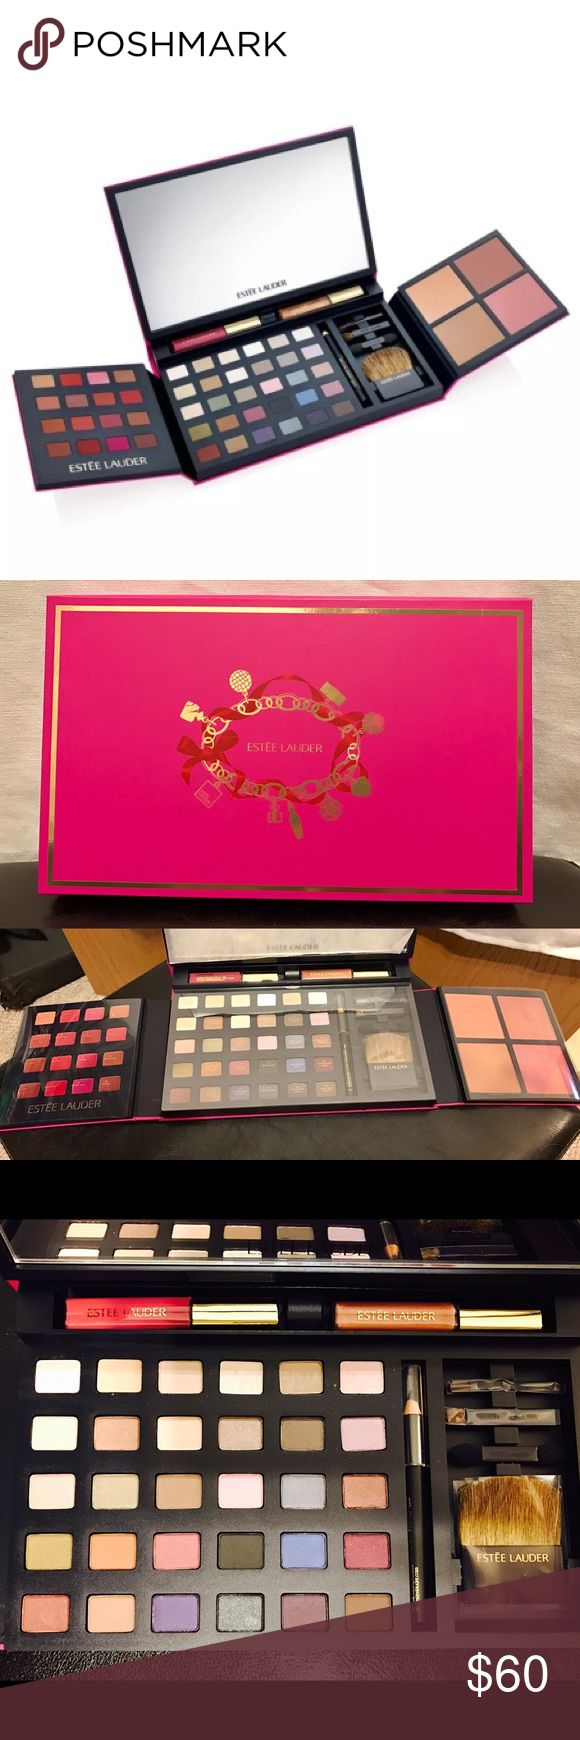 New💄Estee Lauder Makeup Kit Great Makeup Kit! Fold up Design with large mirror! Comes with •2 Lip Glosses •Black Eyeliner •30 Eyeshadows •16 Lip Colors •3 Blushes •1 Bronzer •4 Brush/Applicators. Brand New never used! (some wear on the outside but not very noticeable and doesn't effect product)😍Make an Offer! Estee Lauder Makeup